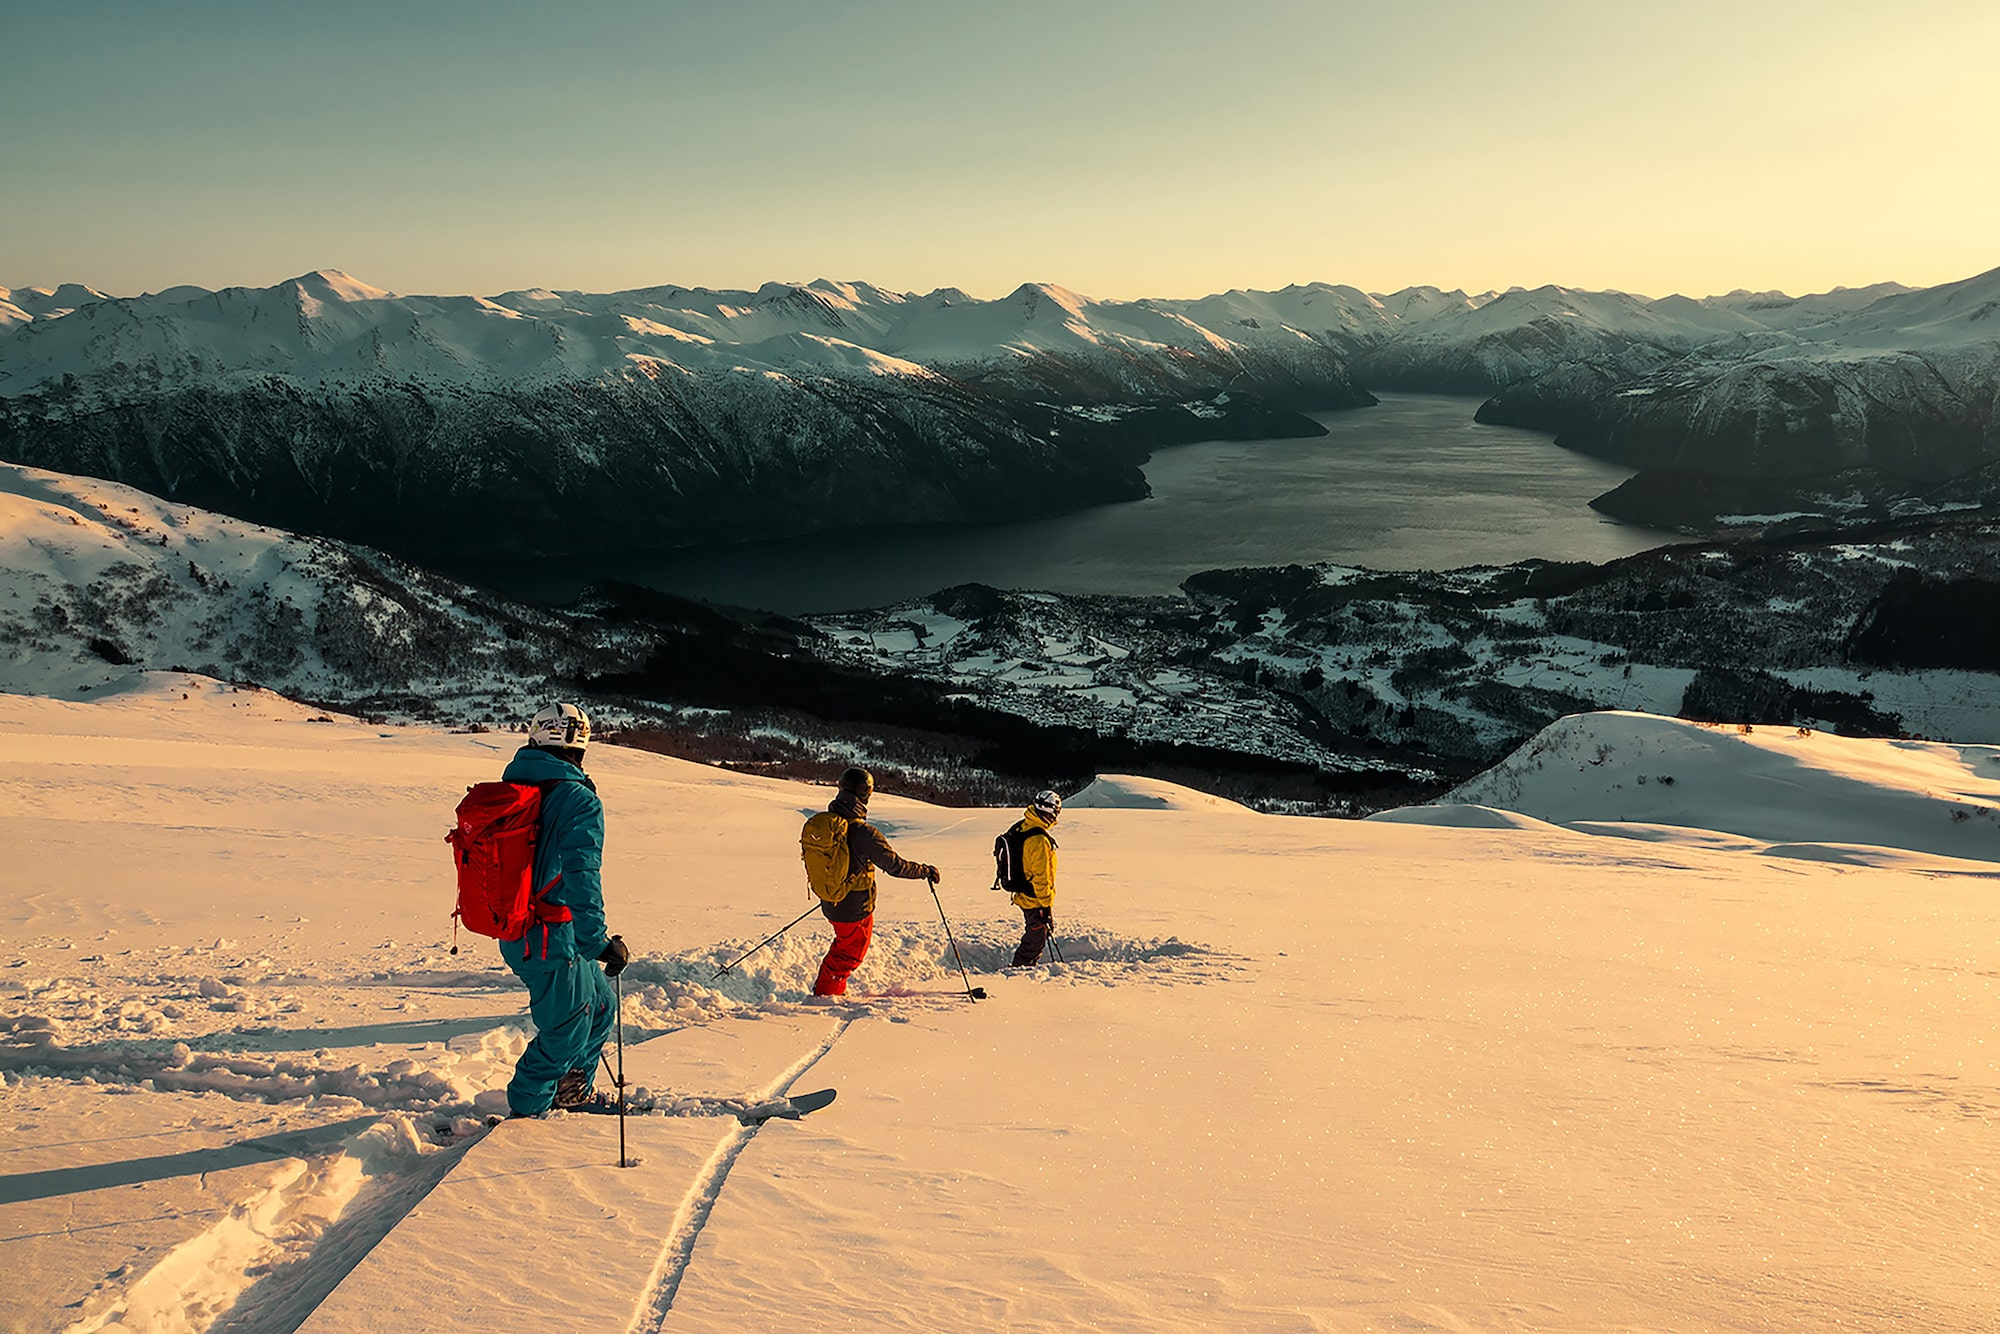 Kyle-Meyr-Sony-alpha-9-group-of-skiers-making-their-way-down-a-slope-in-the-warm-evening-sun